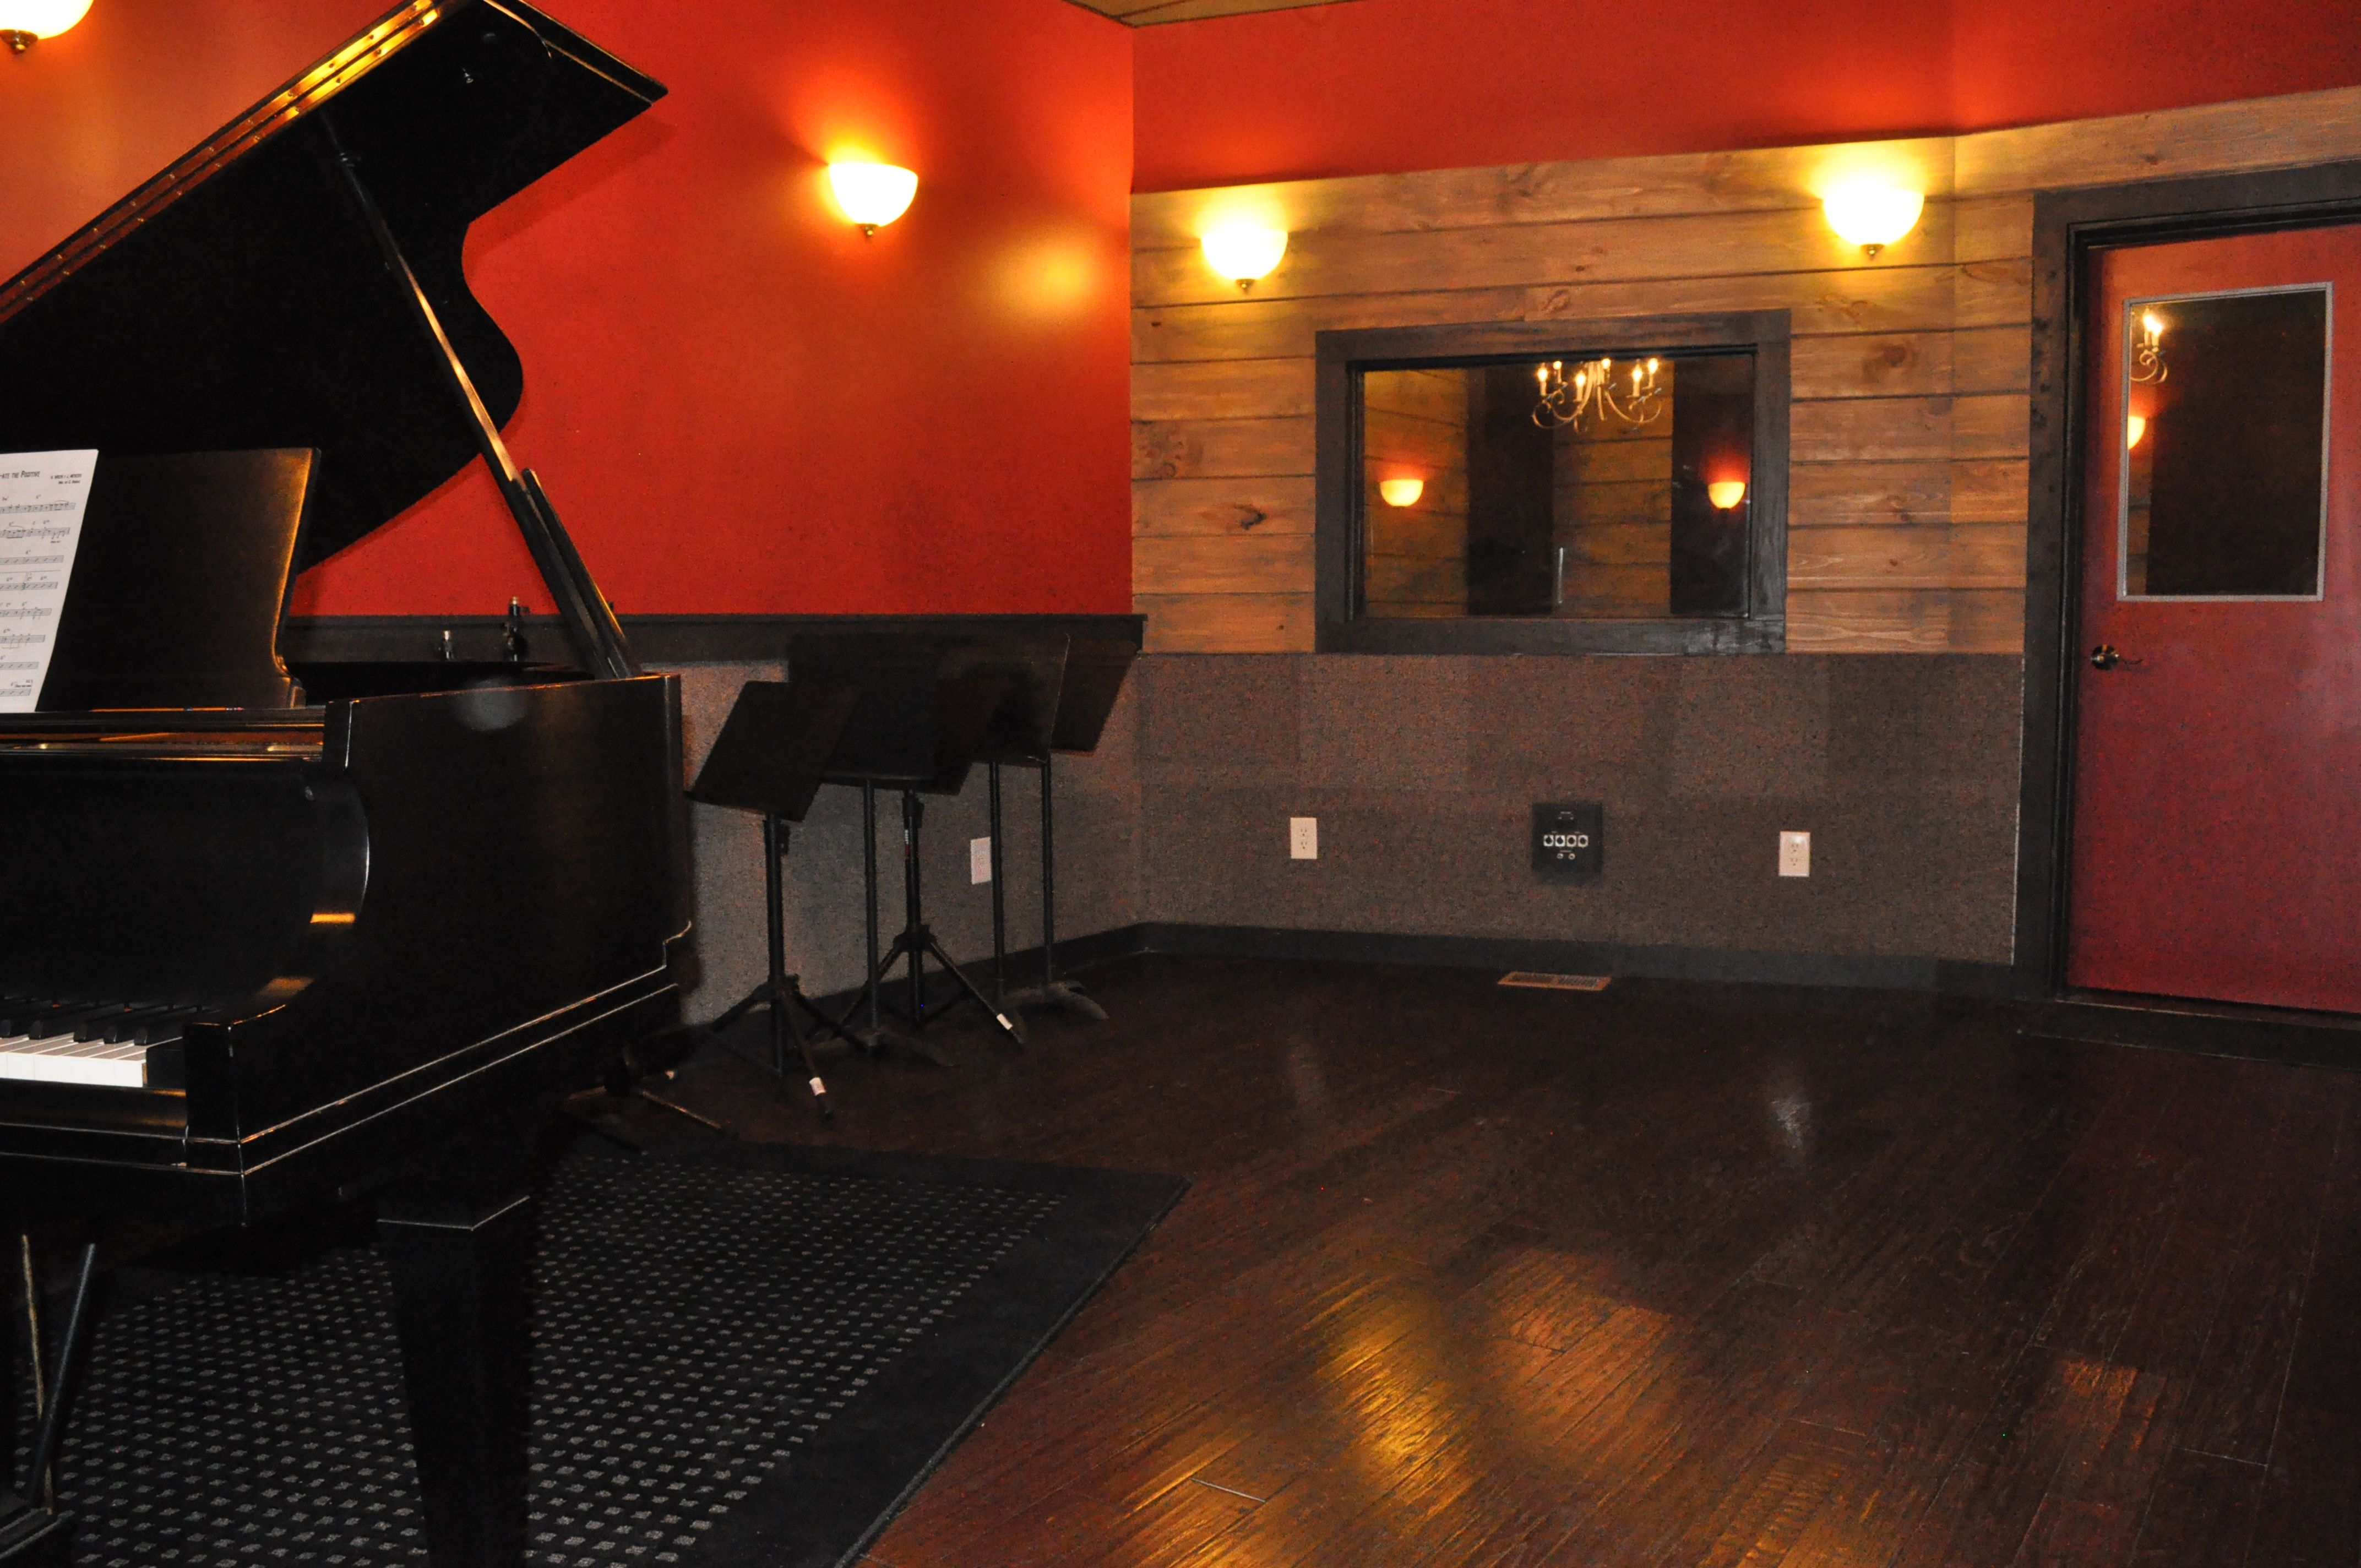 Surprising 17 Best Images About Music Studio On Pinterest Music Rooms Edm Largest Home Design Picture Inspirations Pitcheantrous